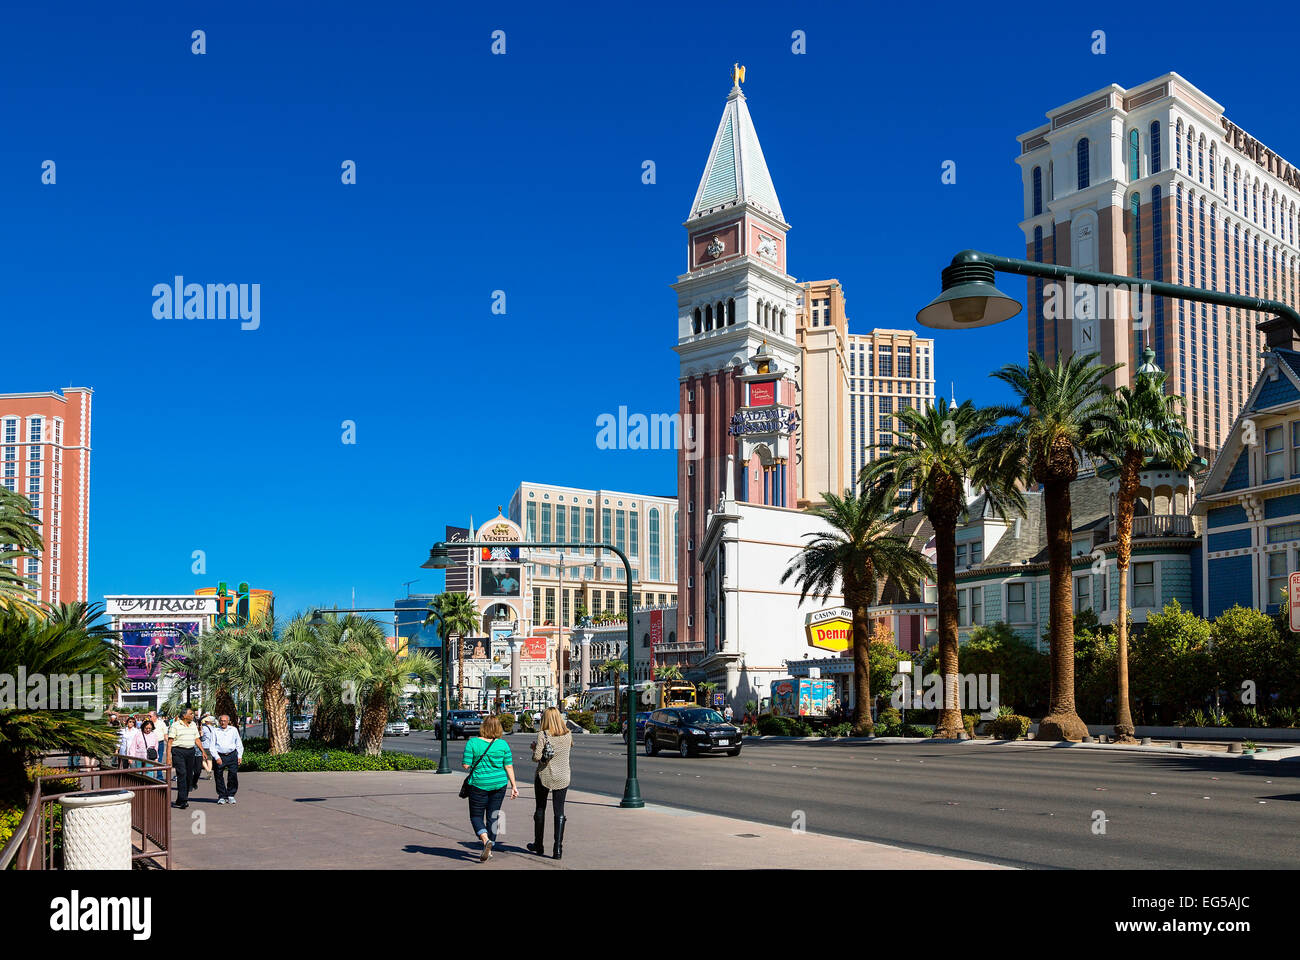 Luxury Hotels and the famous Las Vegas Strip - Stock Image